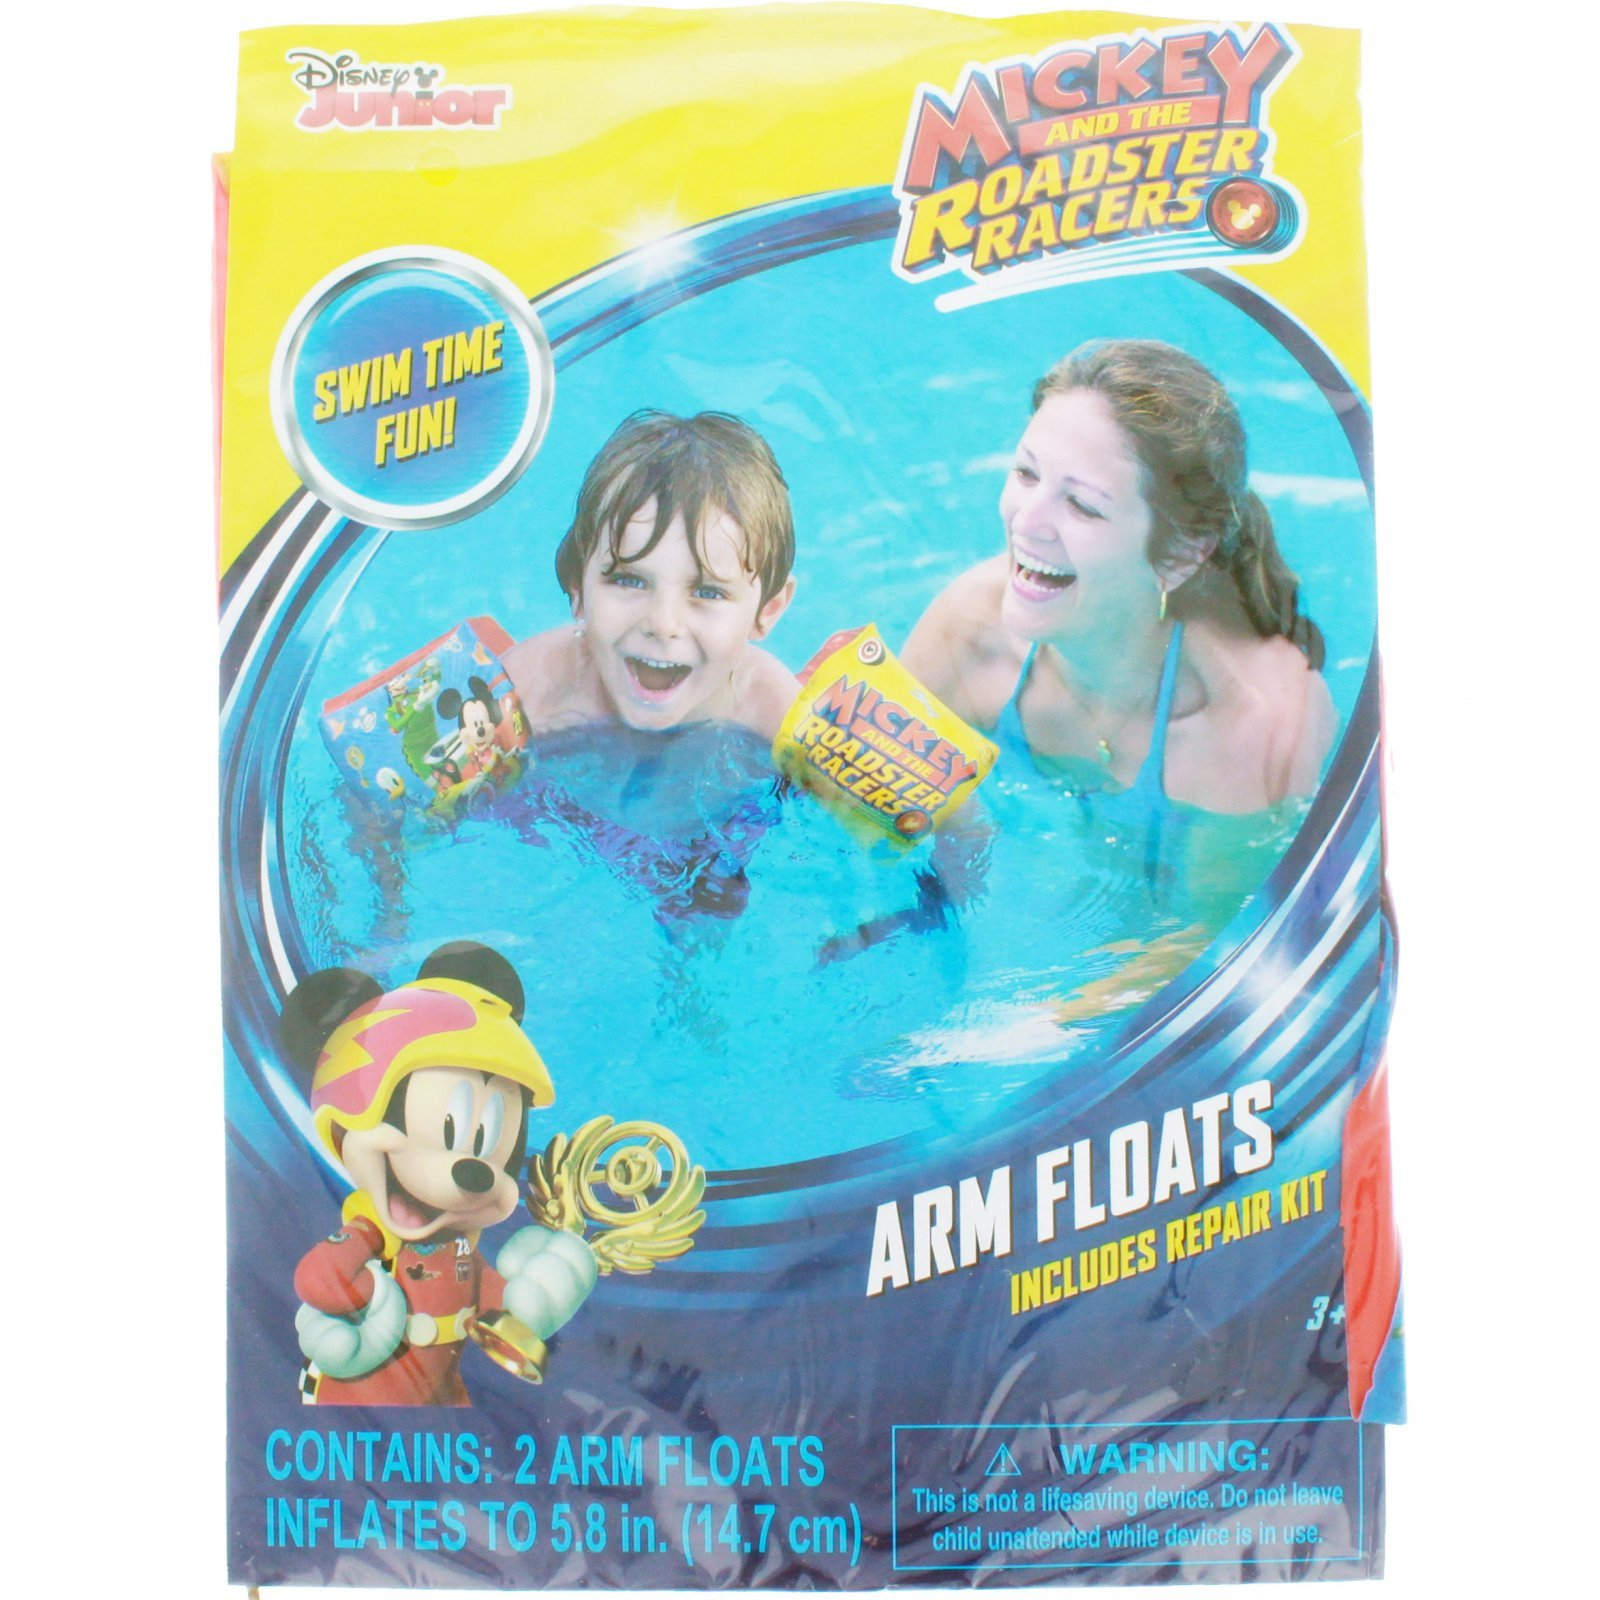 Disney Mickey and the Roadster Racers Swimming Pool Inflatable Arm Floats Floaties